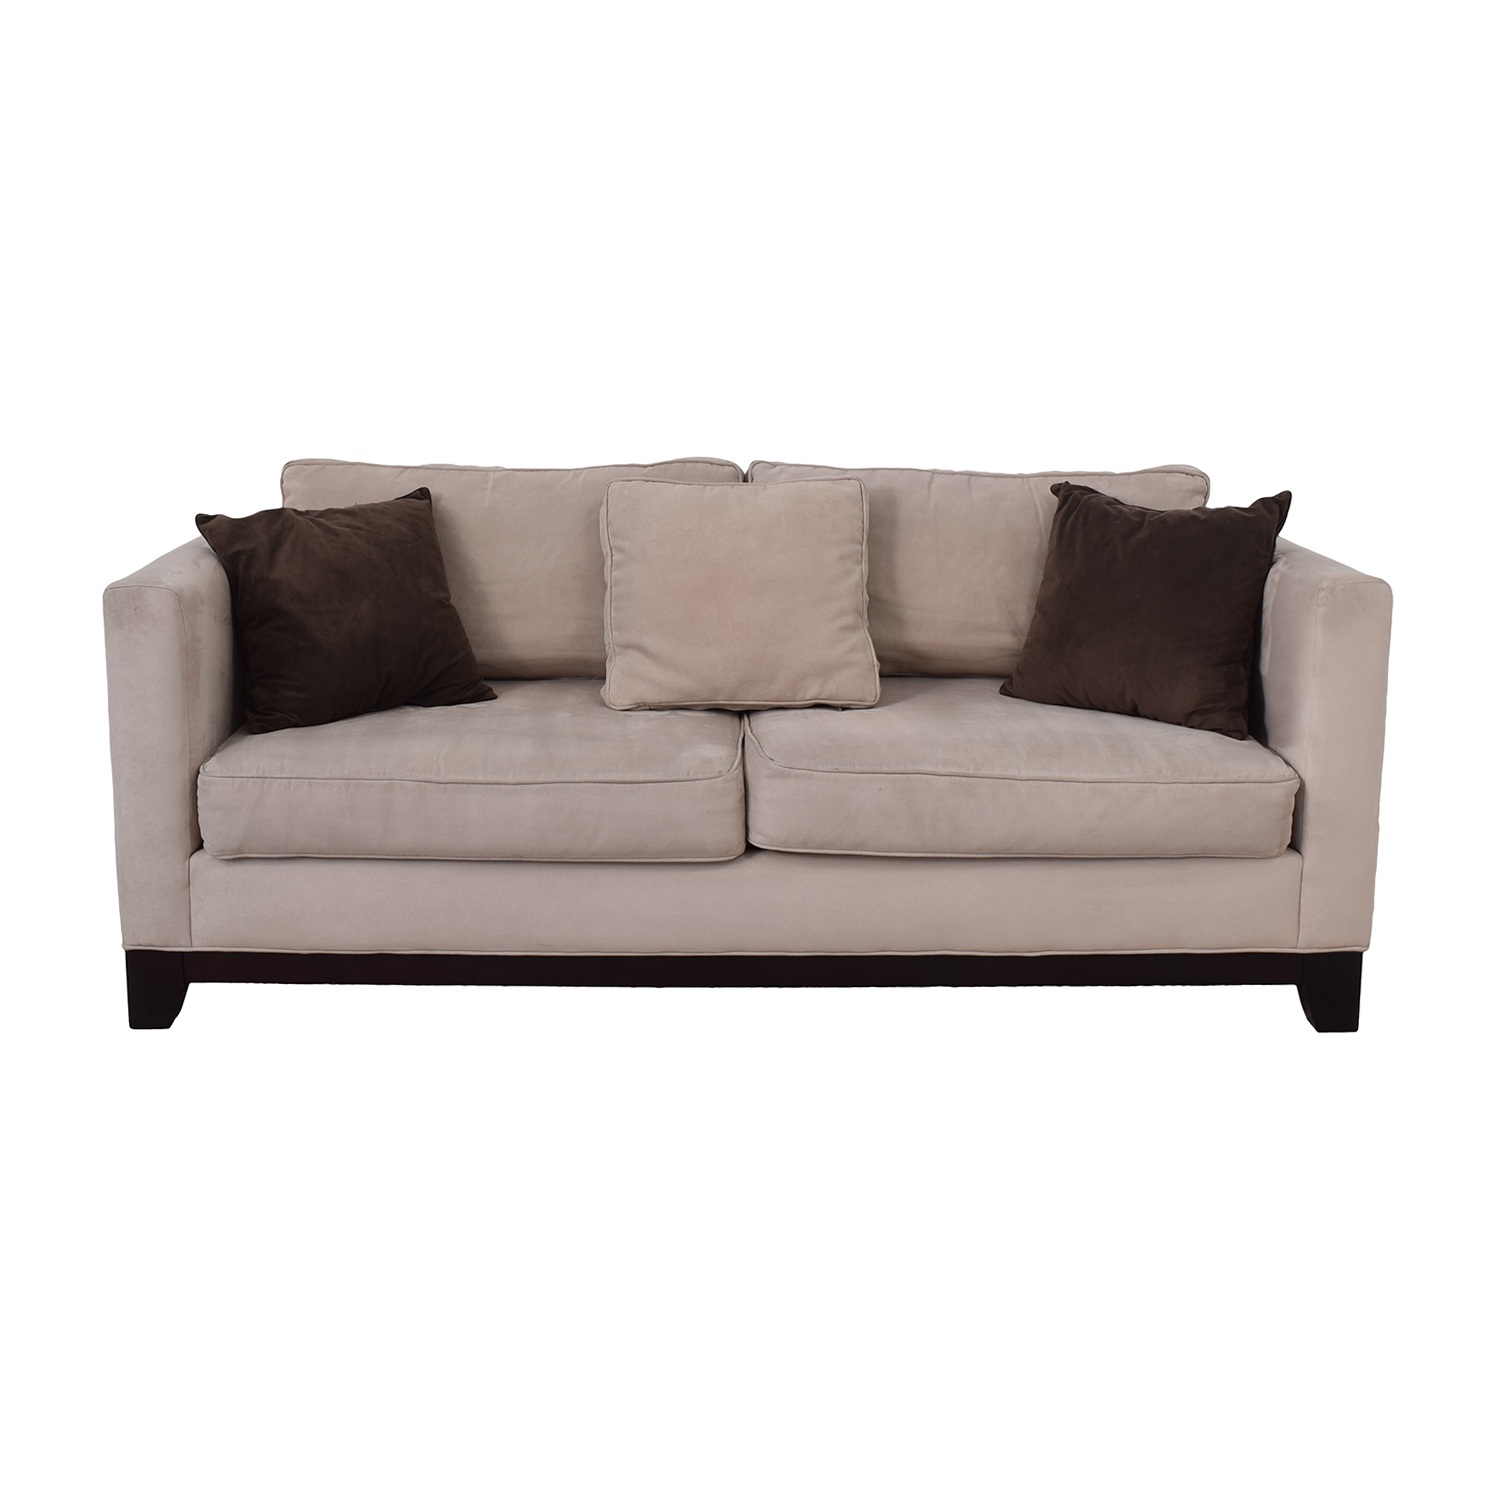 Bauhaus Beige Microsuede Couch With Toss Pillows